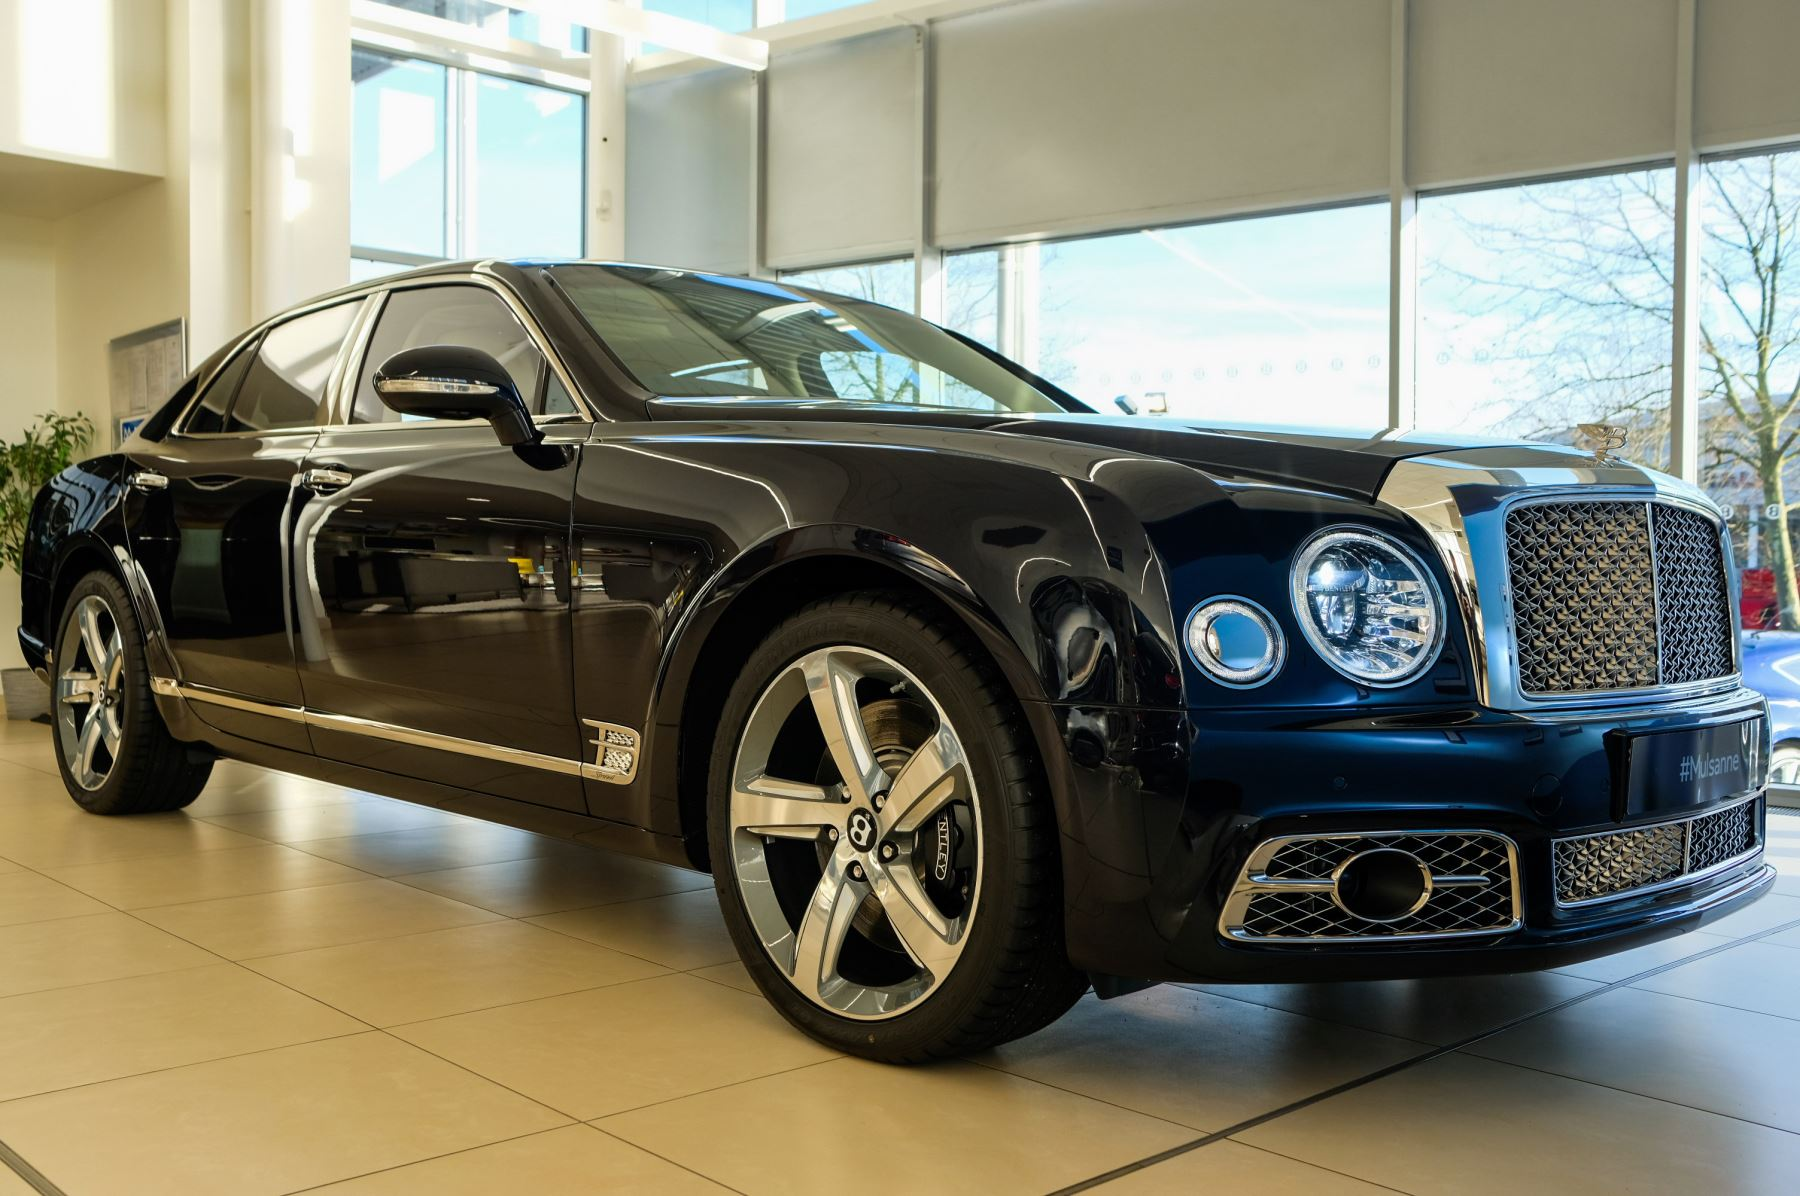 Bentley Mulsanne Speed 6.8 V8 Speed - Speed Premier, Entertainment and Comfort Specification image 1